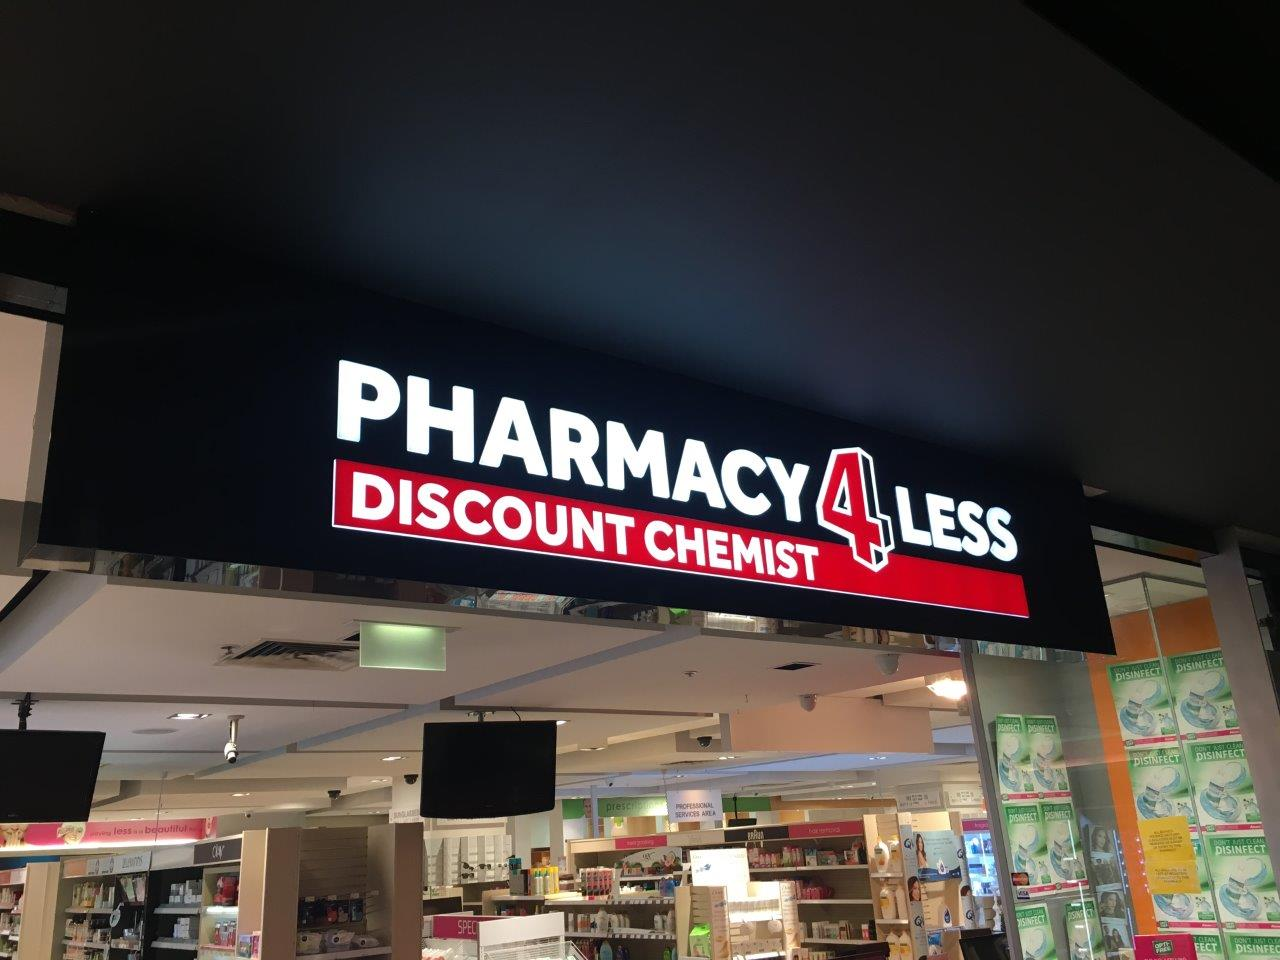 illuminated signage pharmacy4less